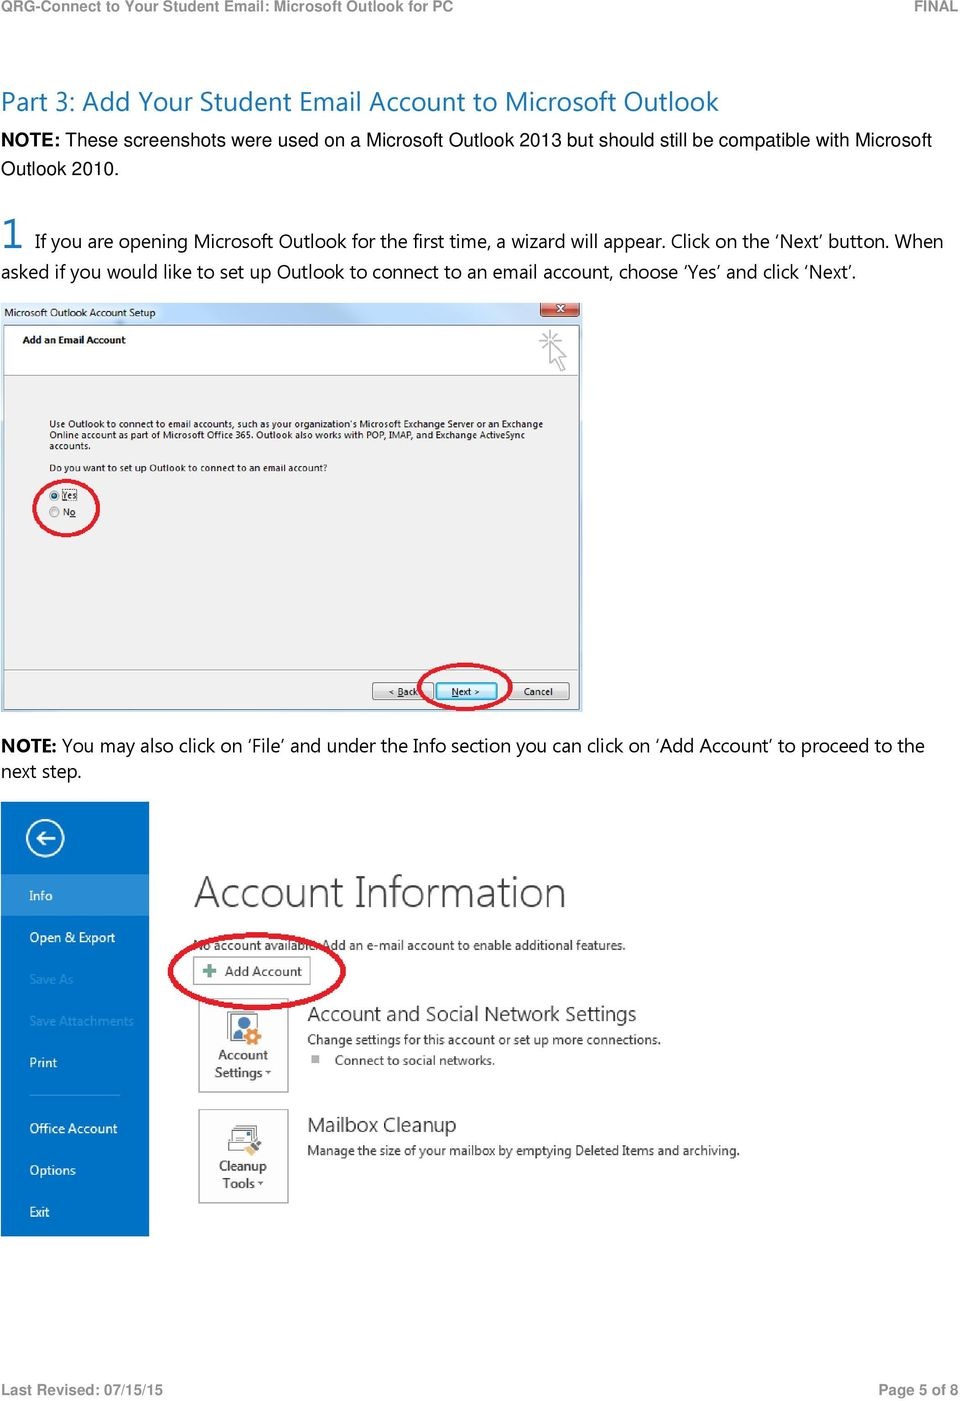 Click on the Next button. When asked if you would like to set up Outlook to connect to an email account, choose Yes and click Next.